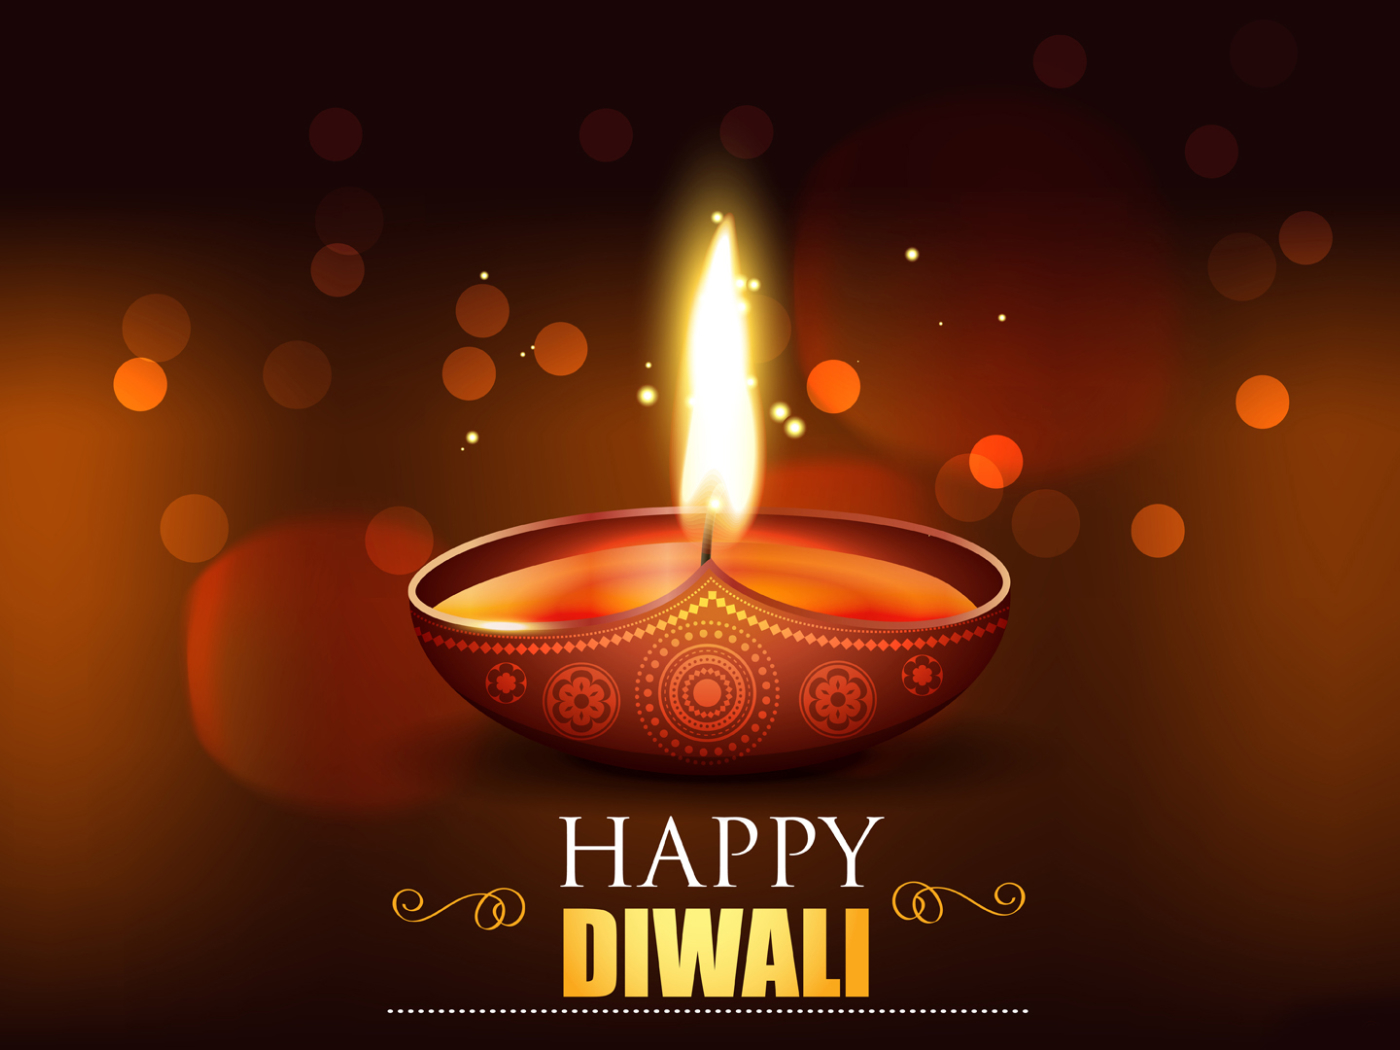 Happy Diwali 2020 Wallpaper in 1400x1050 Resolution